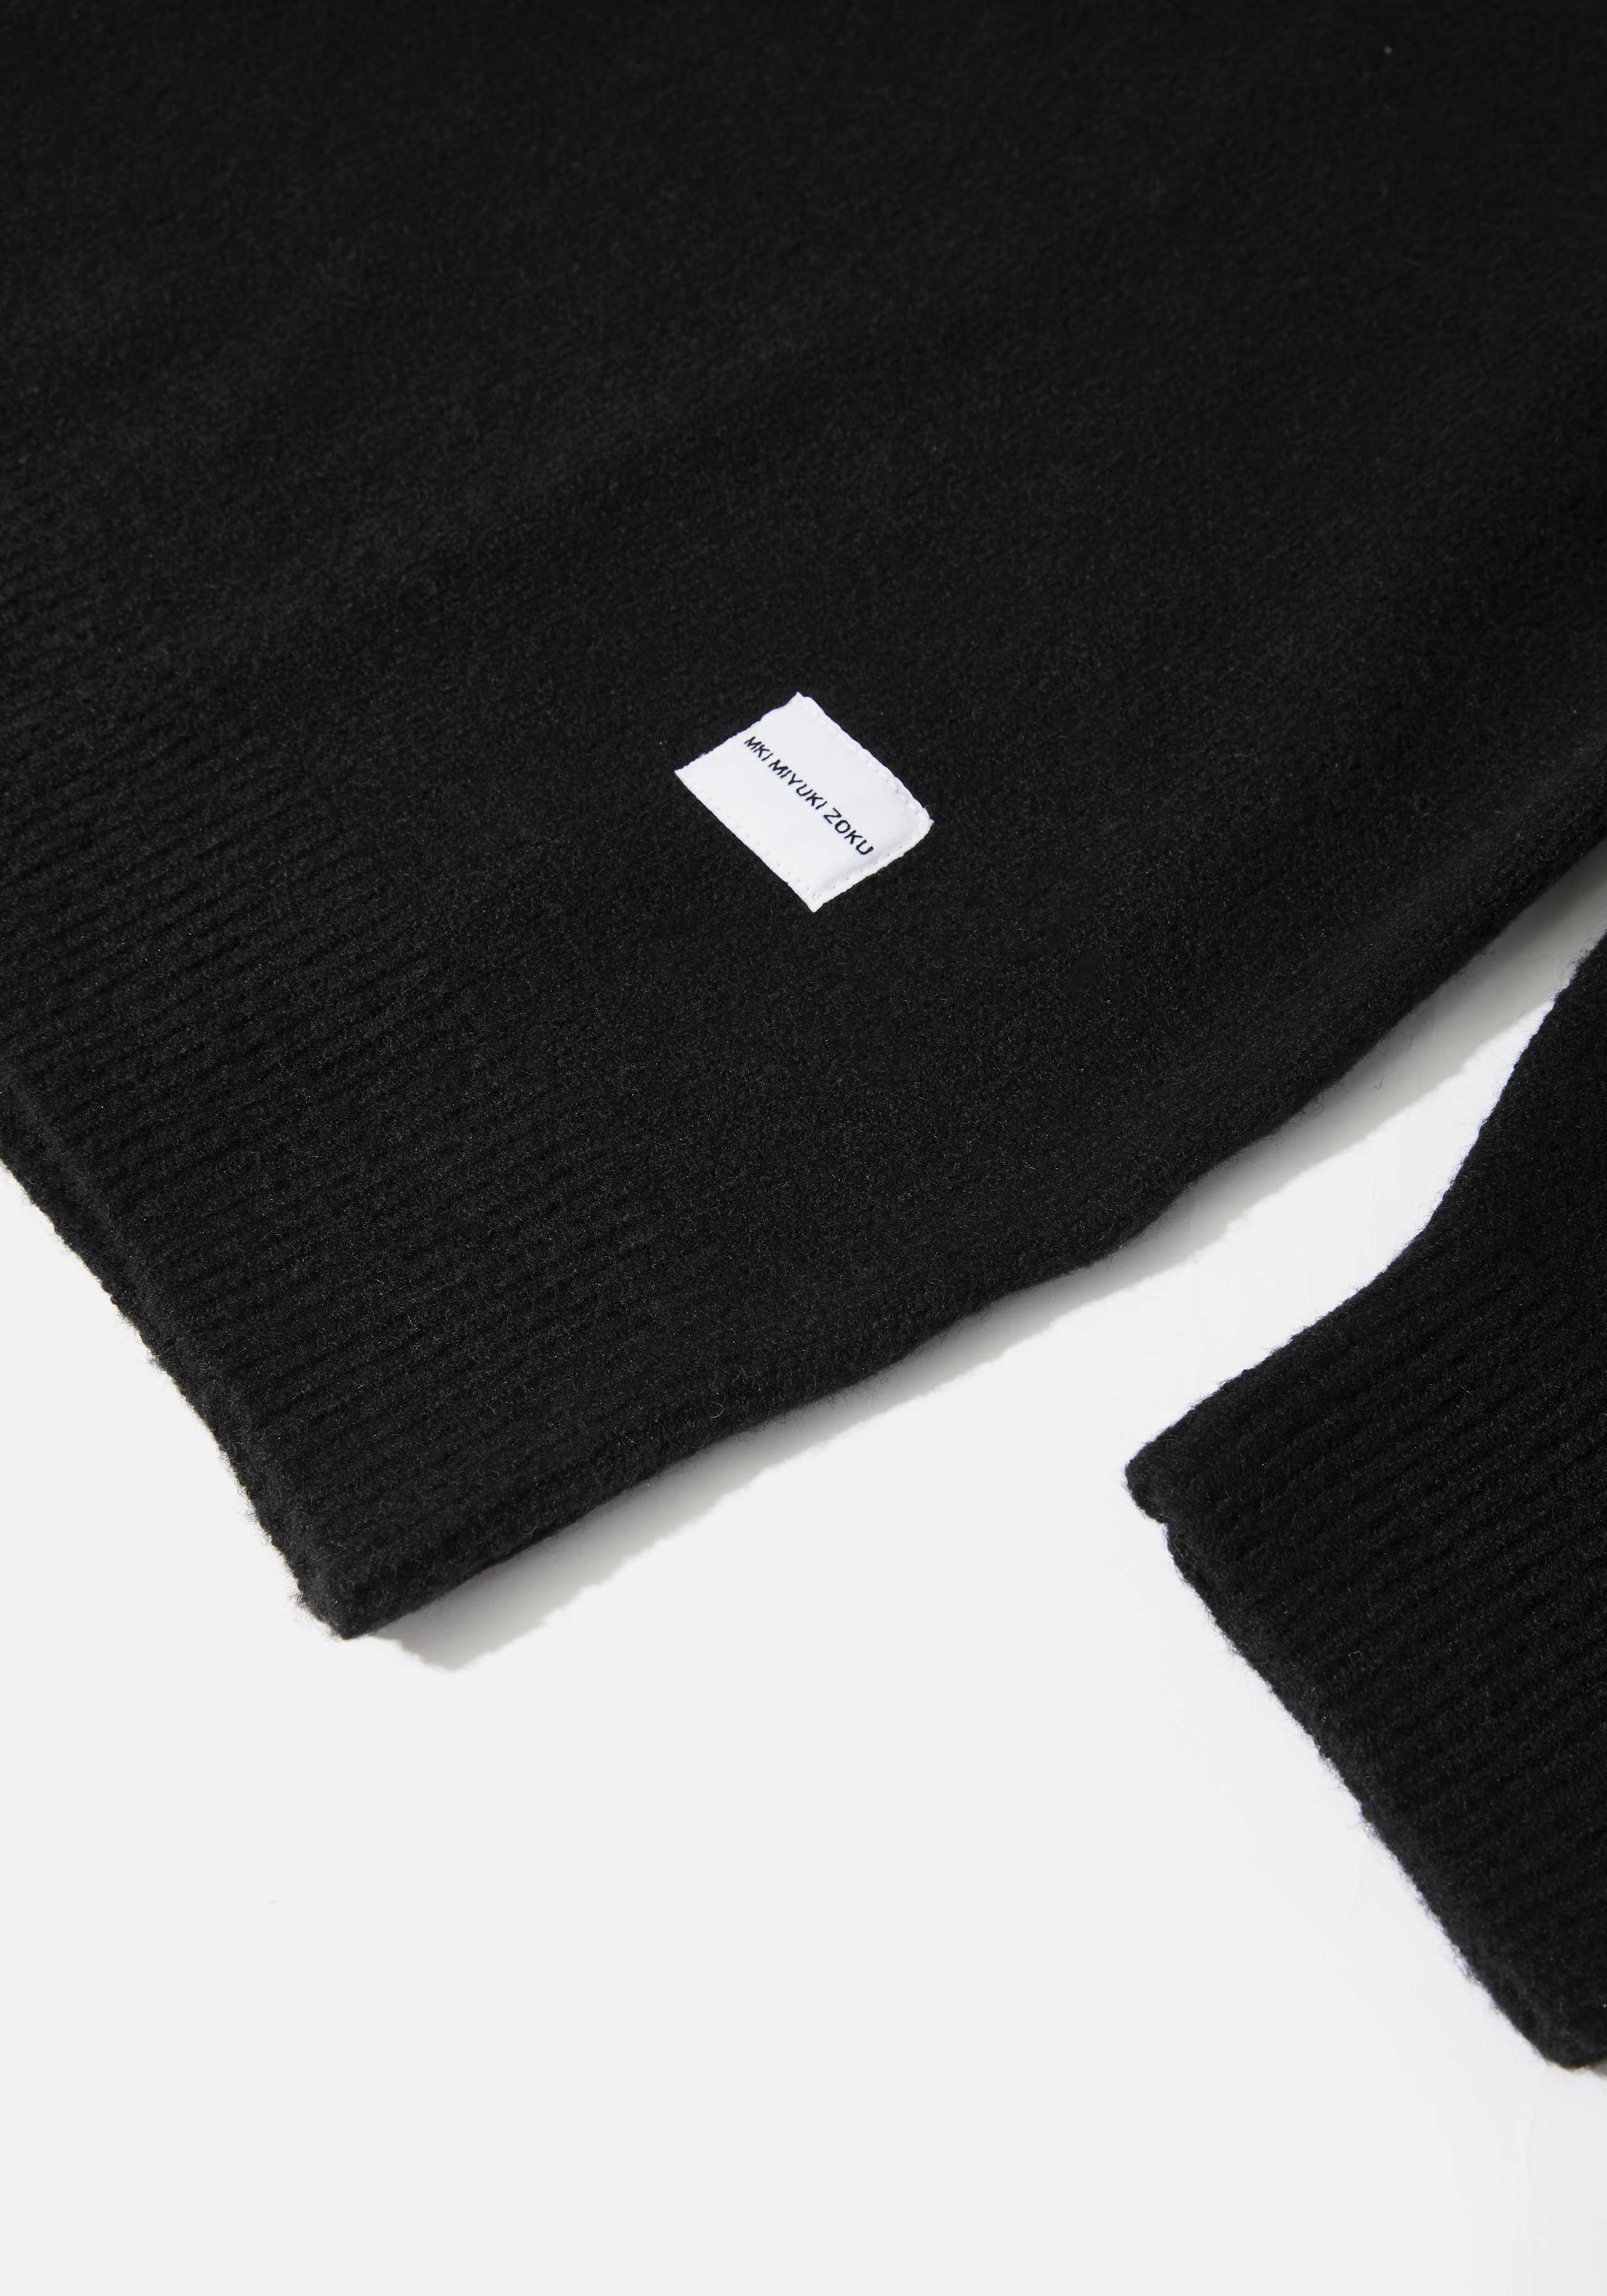 mki heavy knit crewneck 4